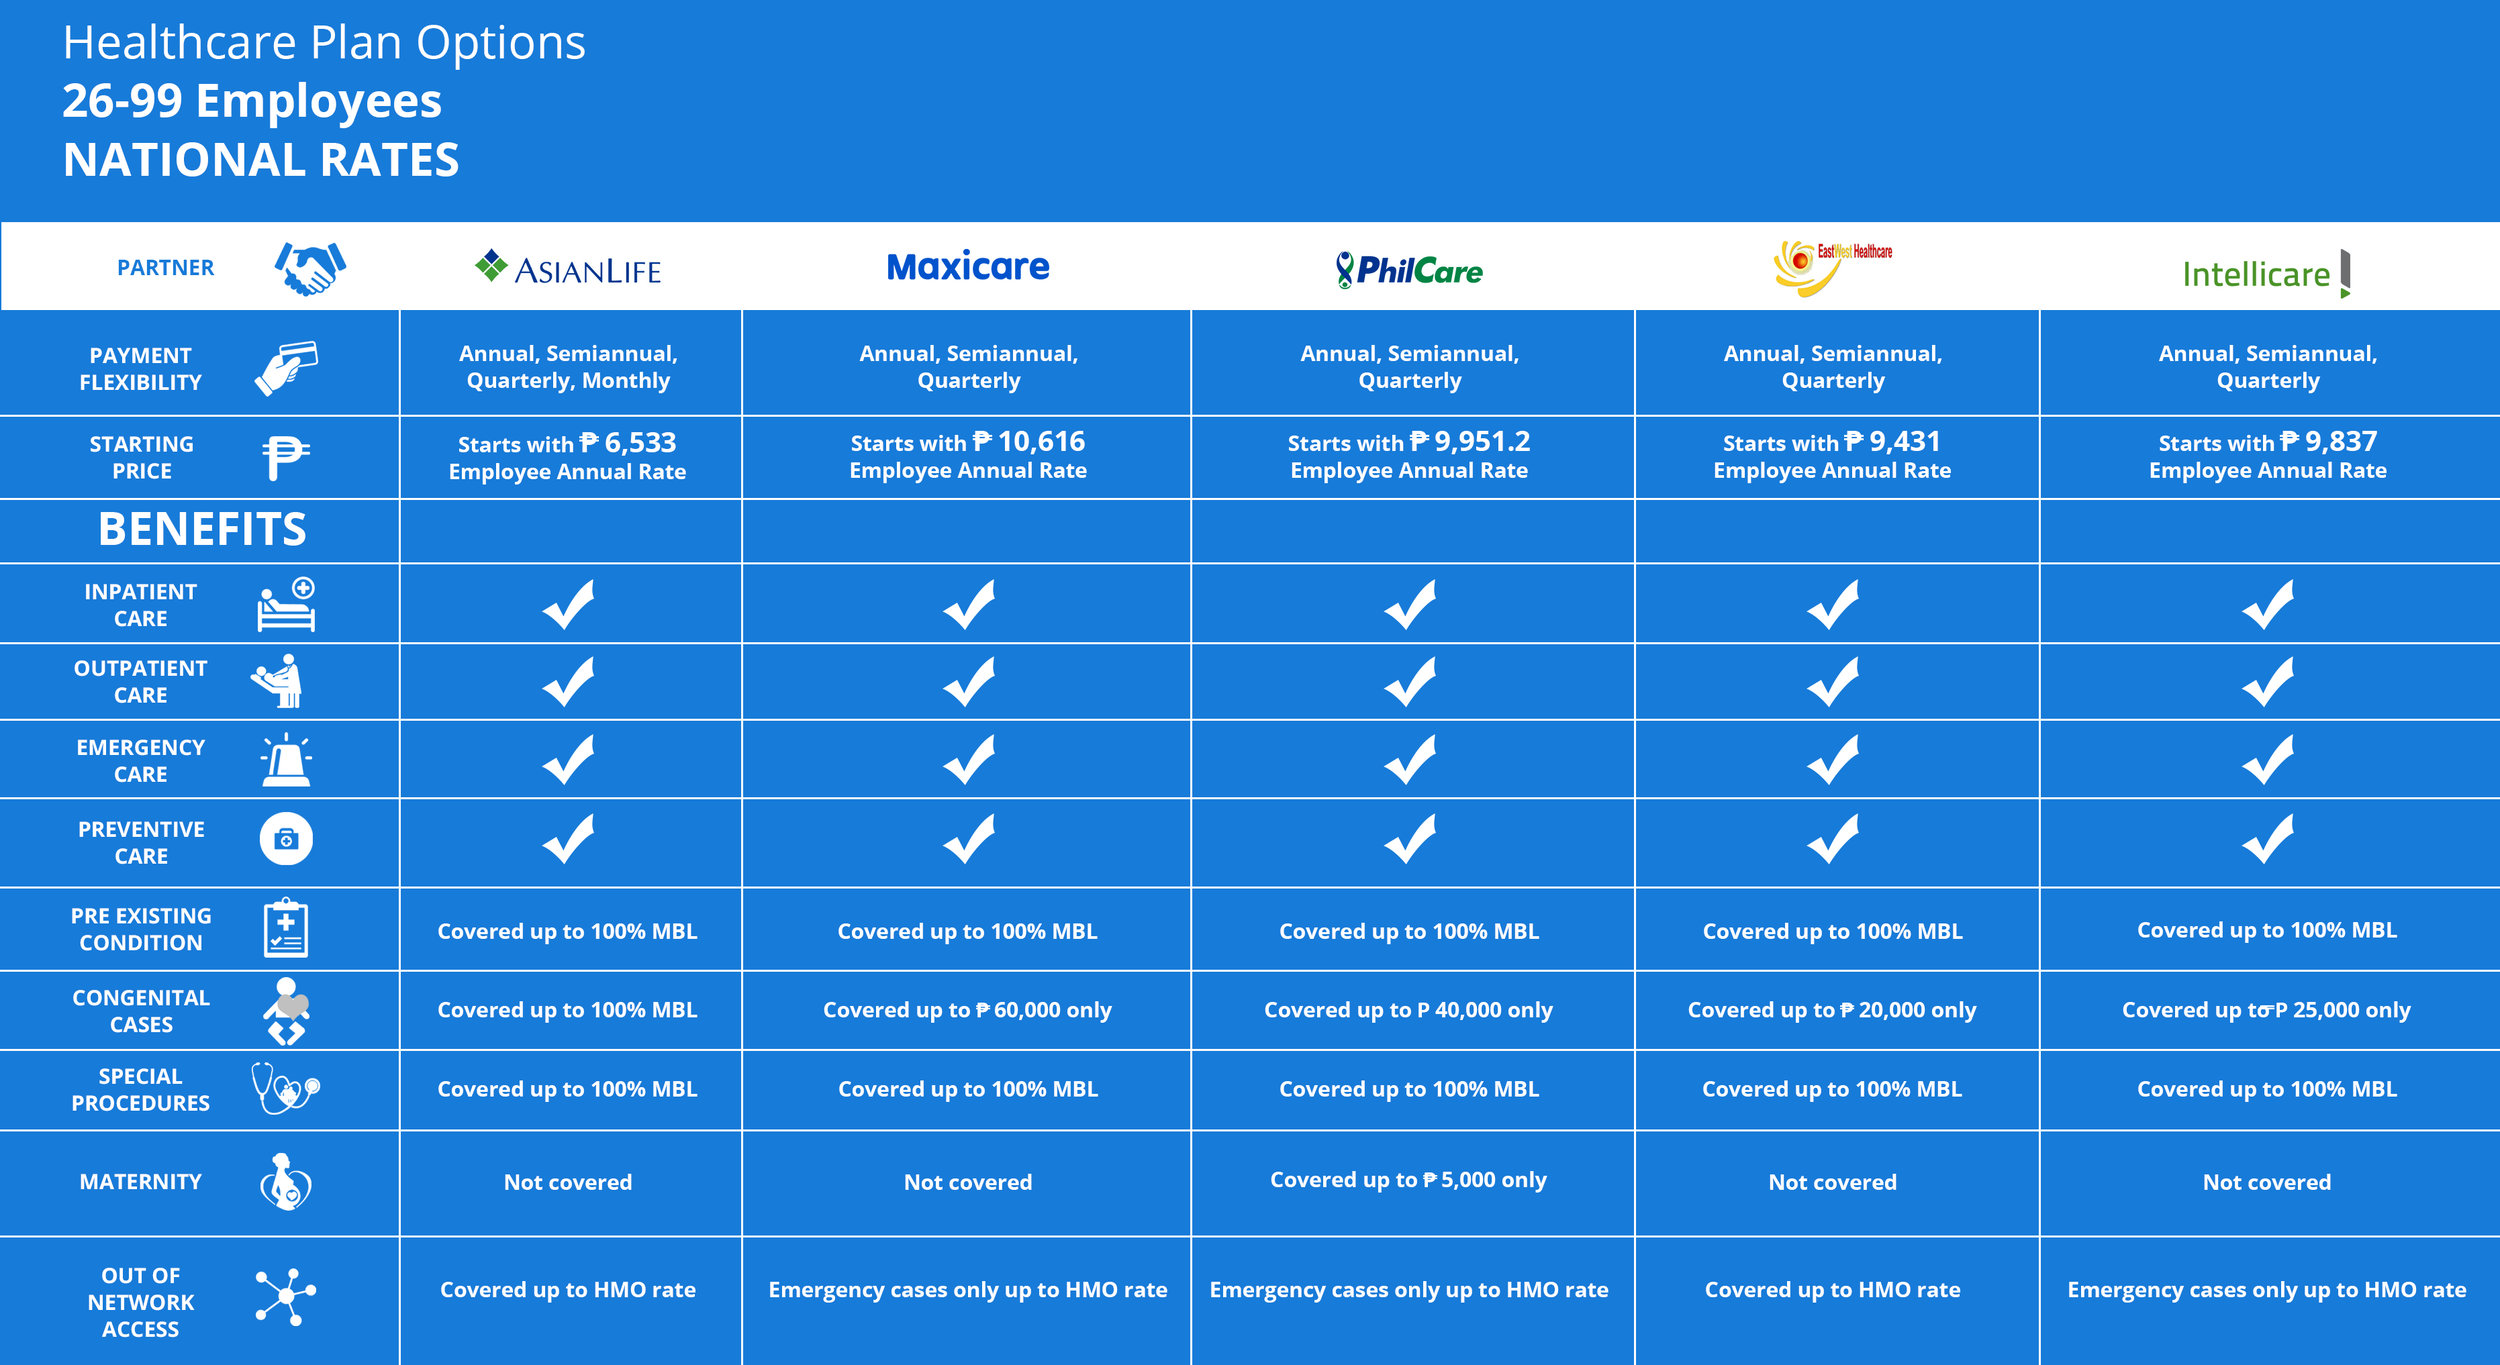 For companies who are comprised of  26-99 employees , here's a simple comparison on the partners, starting annual cost per employee and the detailed out benefits per HMO. You can avail of plans from Asianlife, Maxicare, Philcare, Eastwest and Intellicare Healthcare.